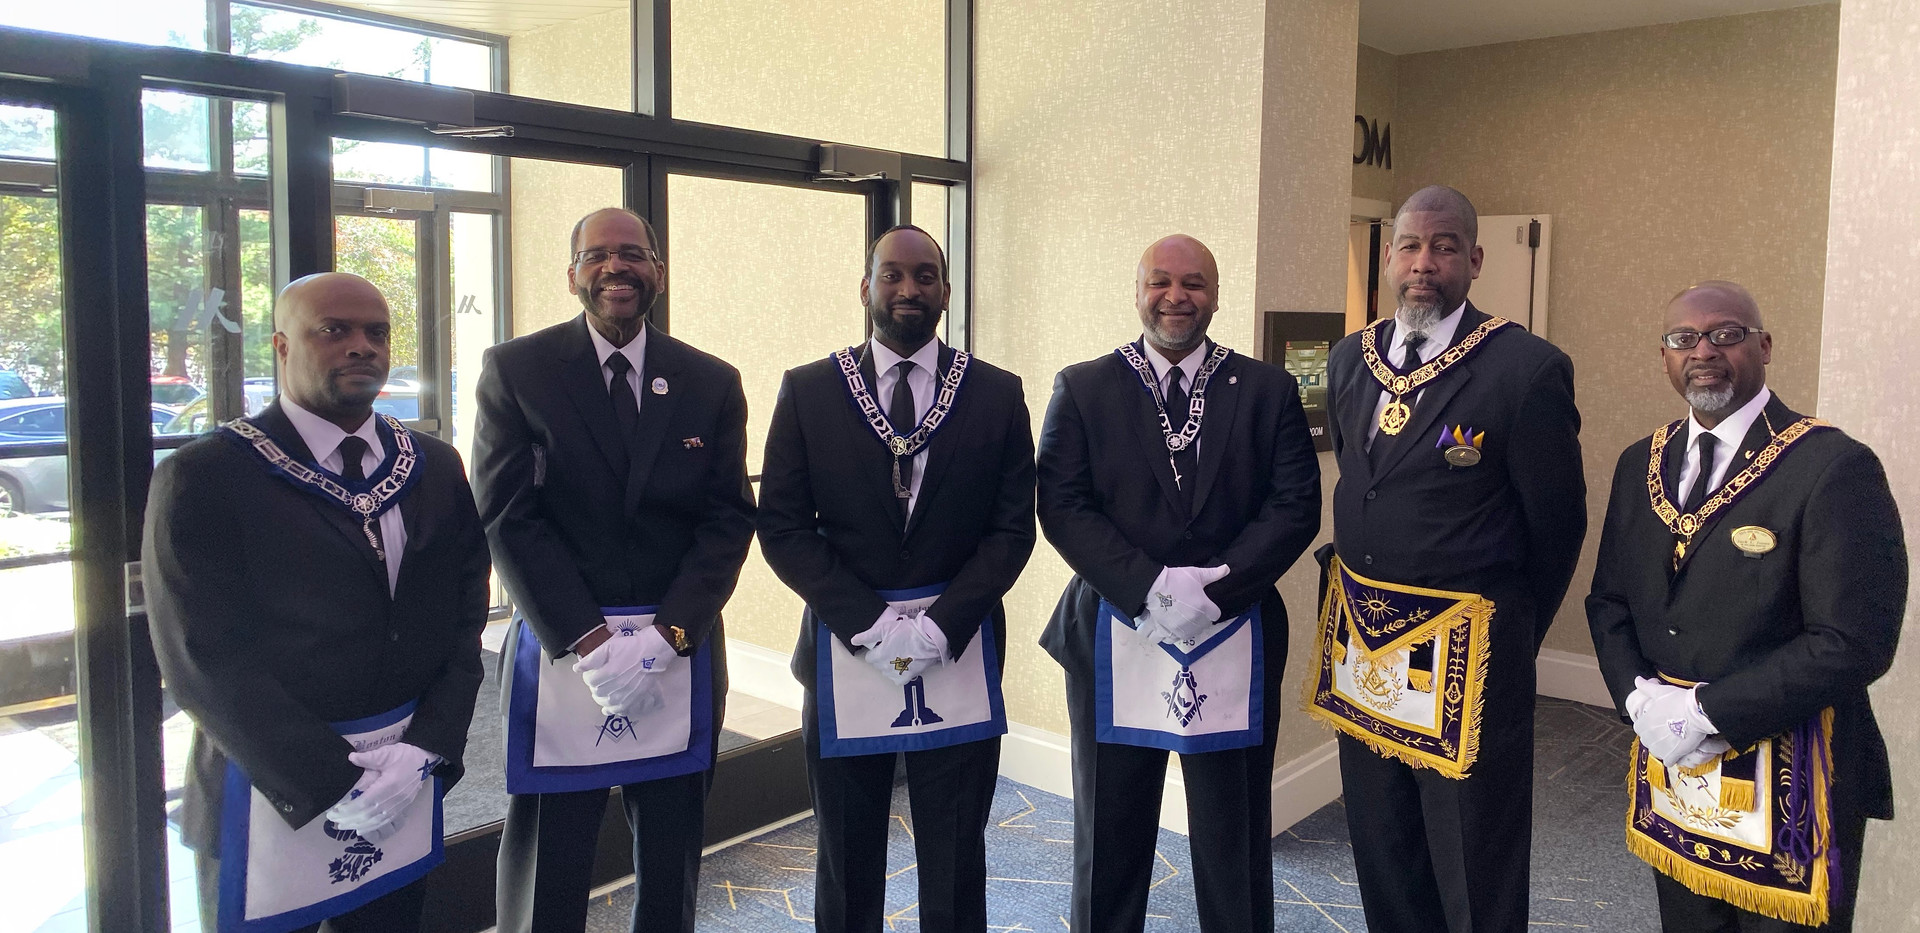 2019 OES Myra Grand Chapter Grand Session